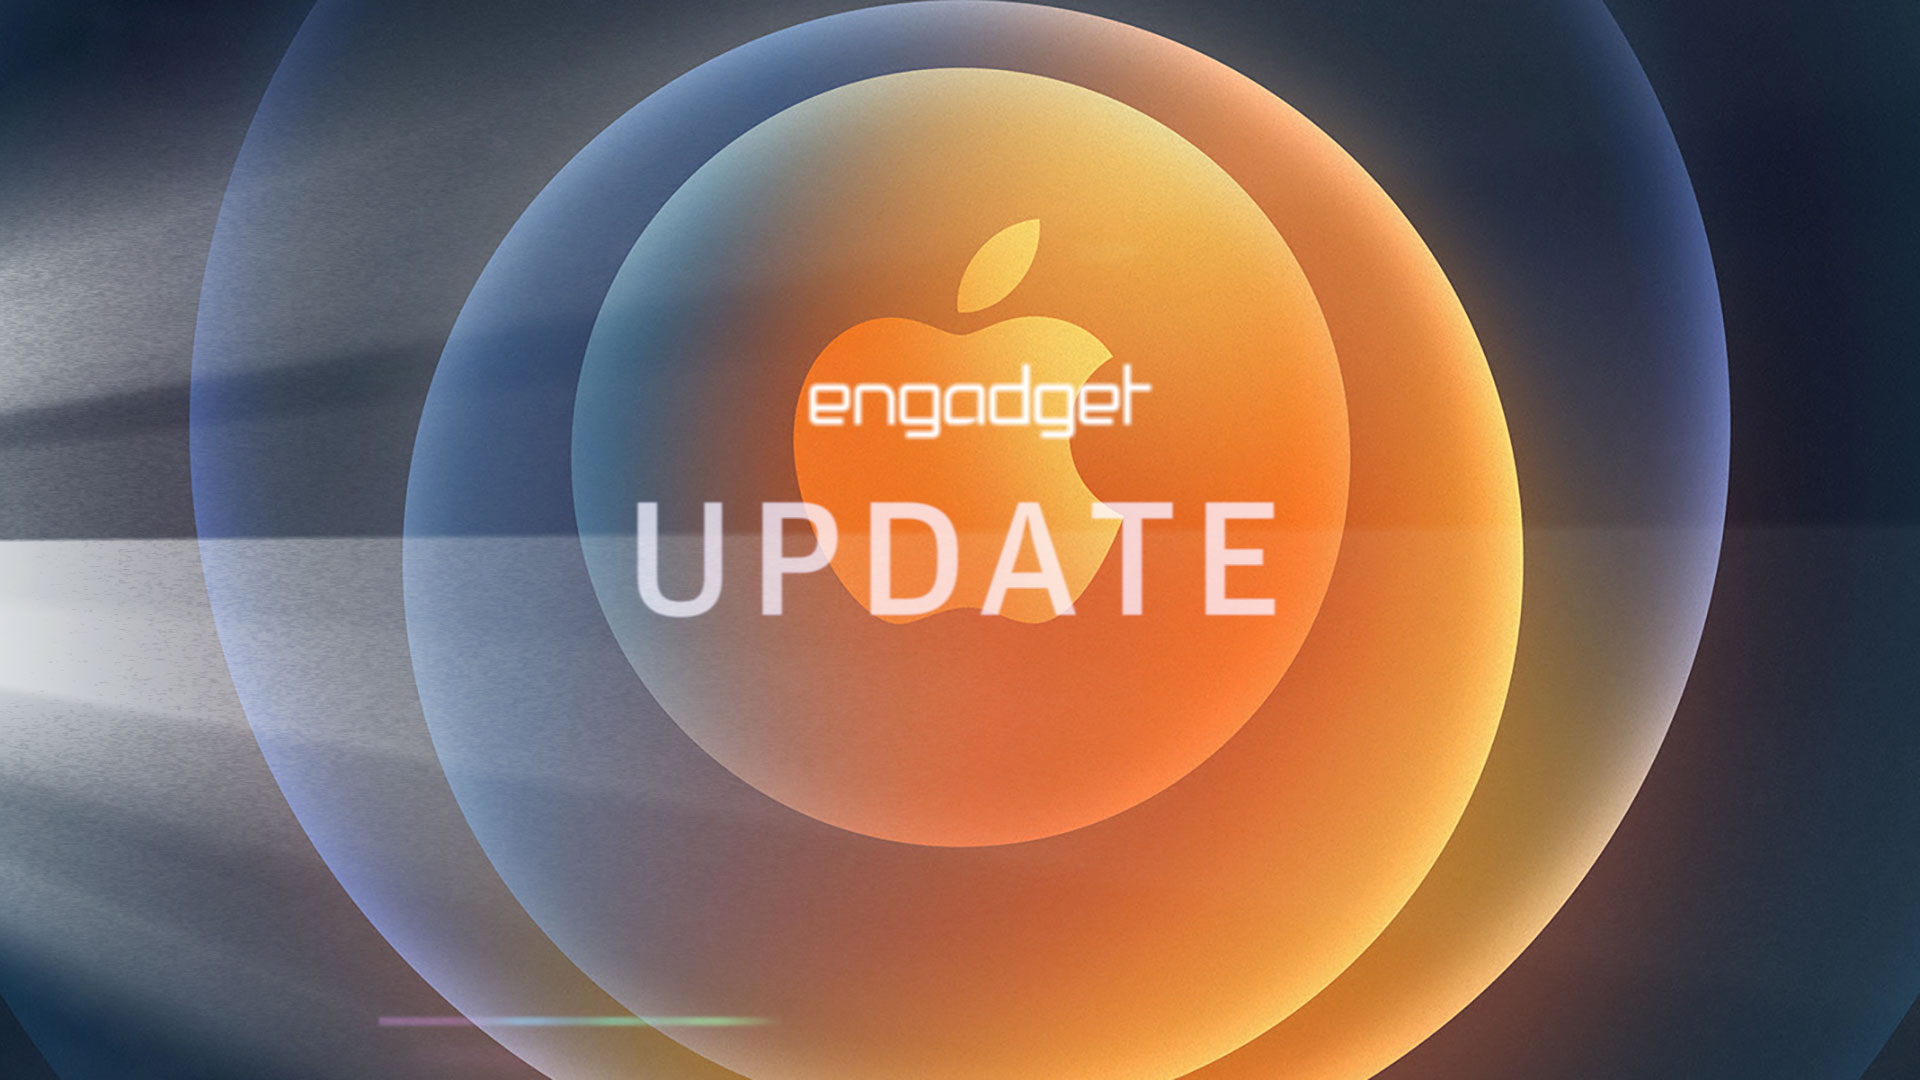 Engadget Update EP76